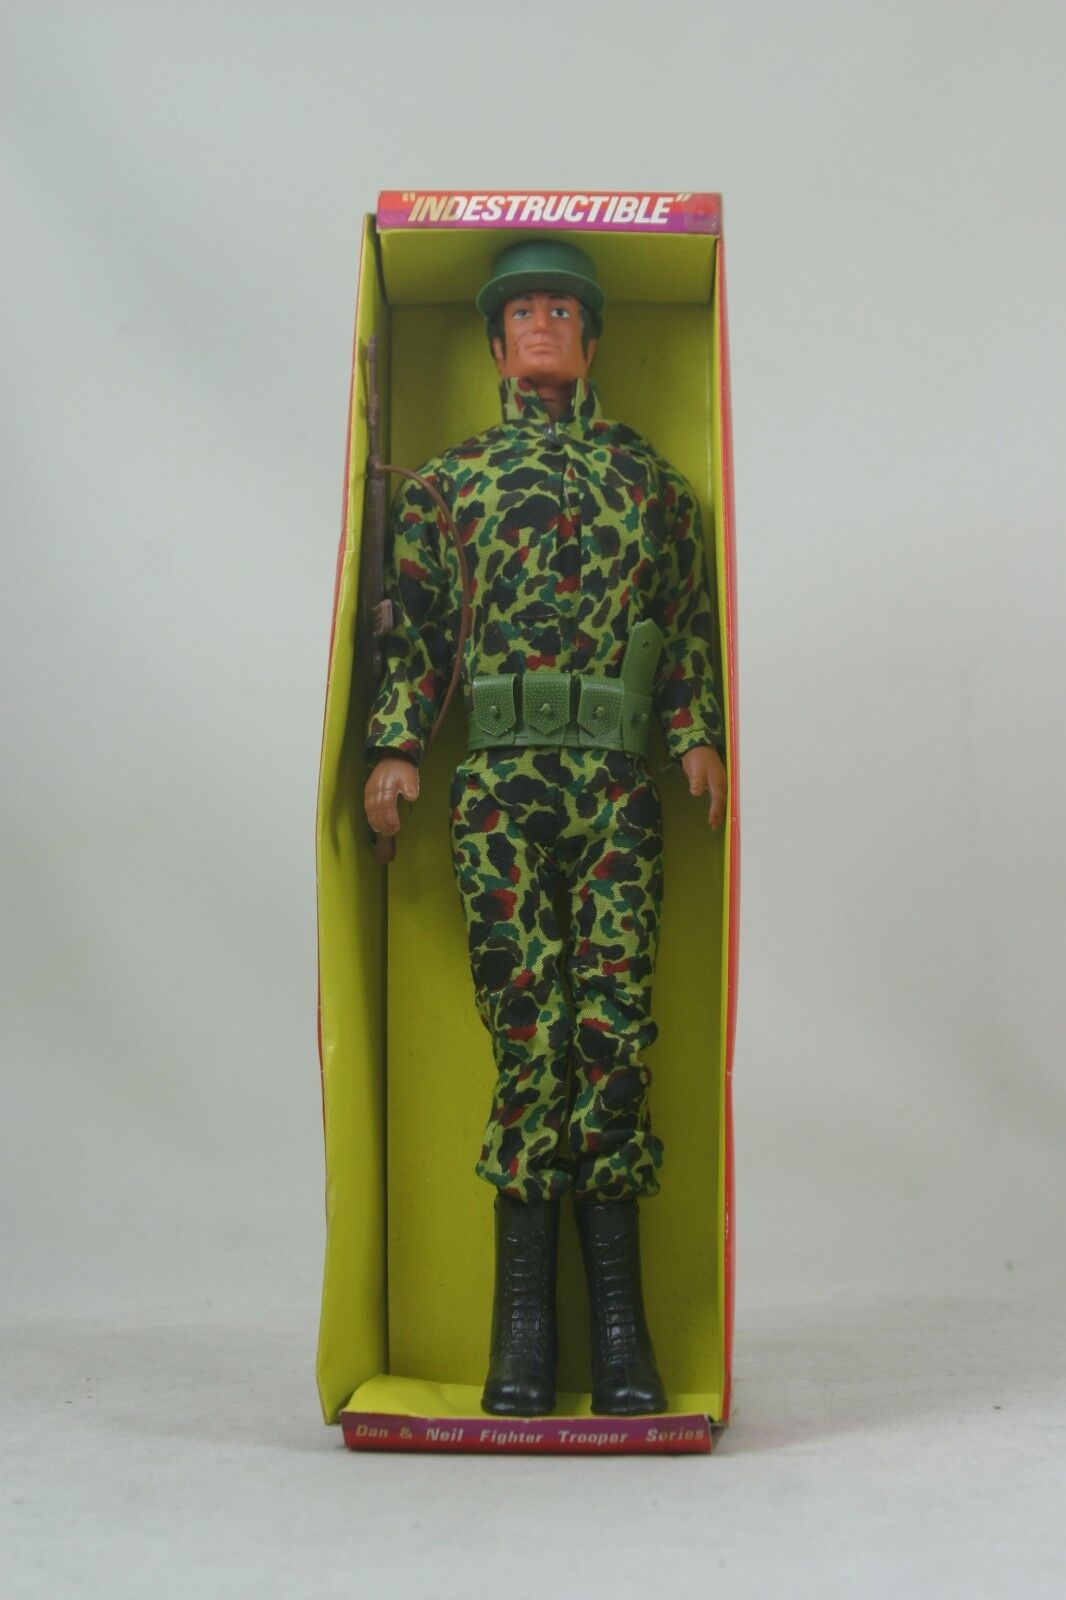 Indestructible Dan & Neil fighter trooper series action figure doll mint in box